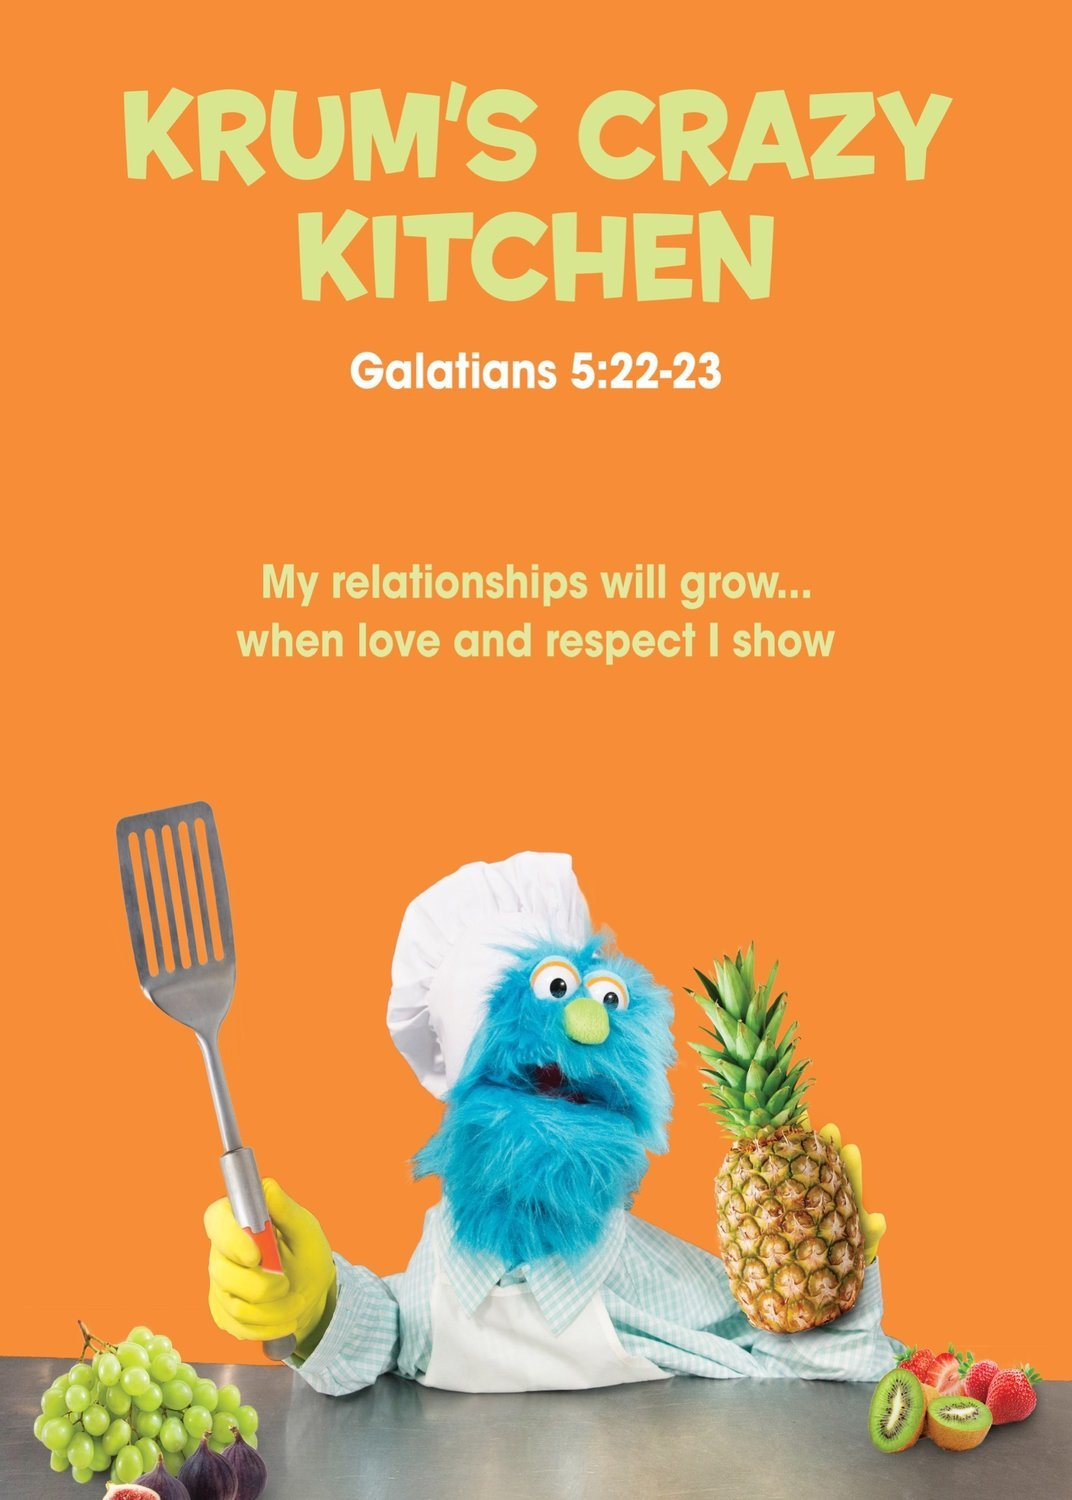 KRUM'S CRAZY KITCHEN (relationship series)